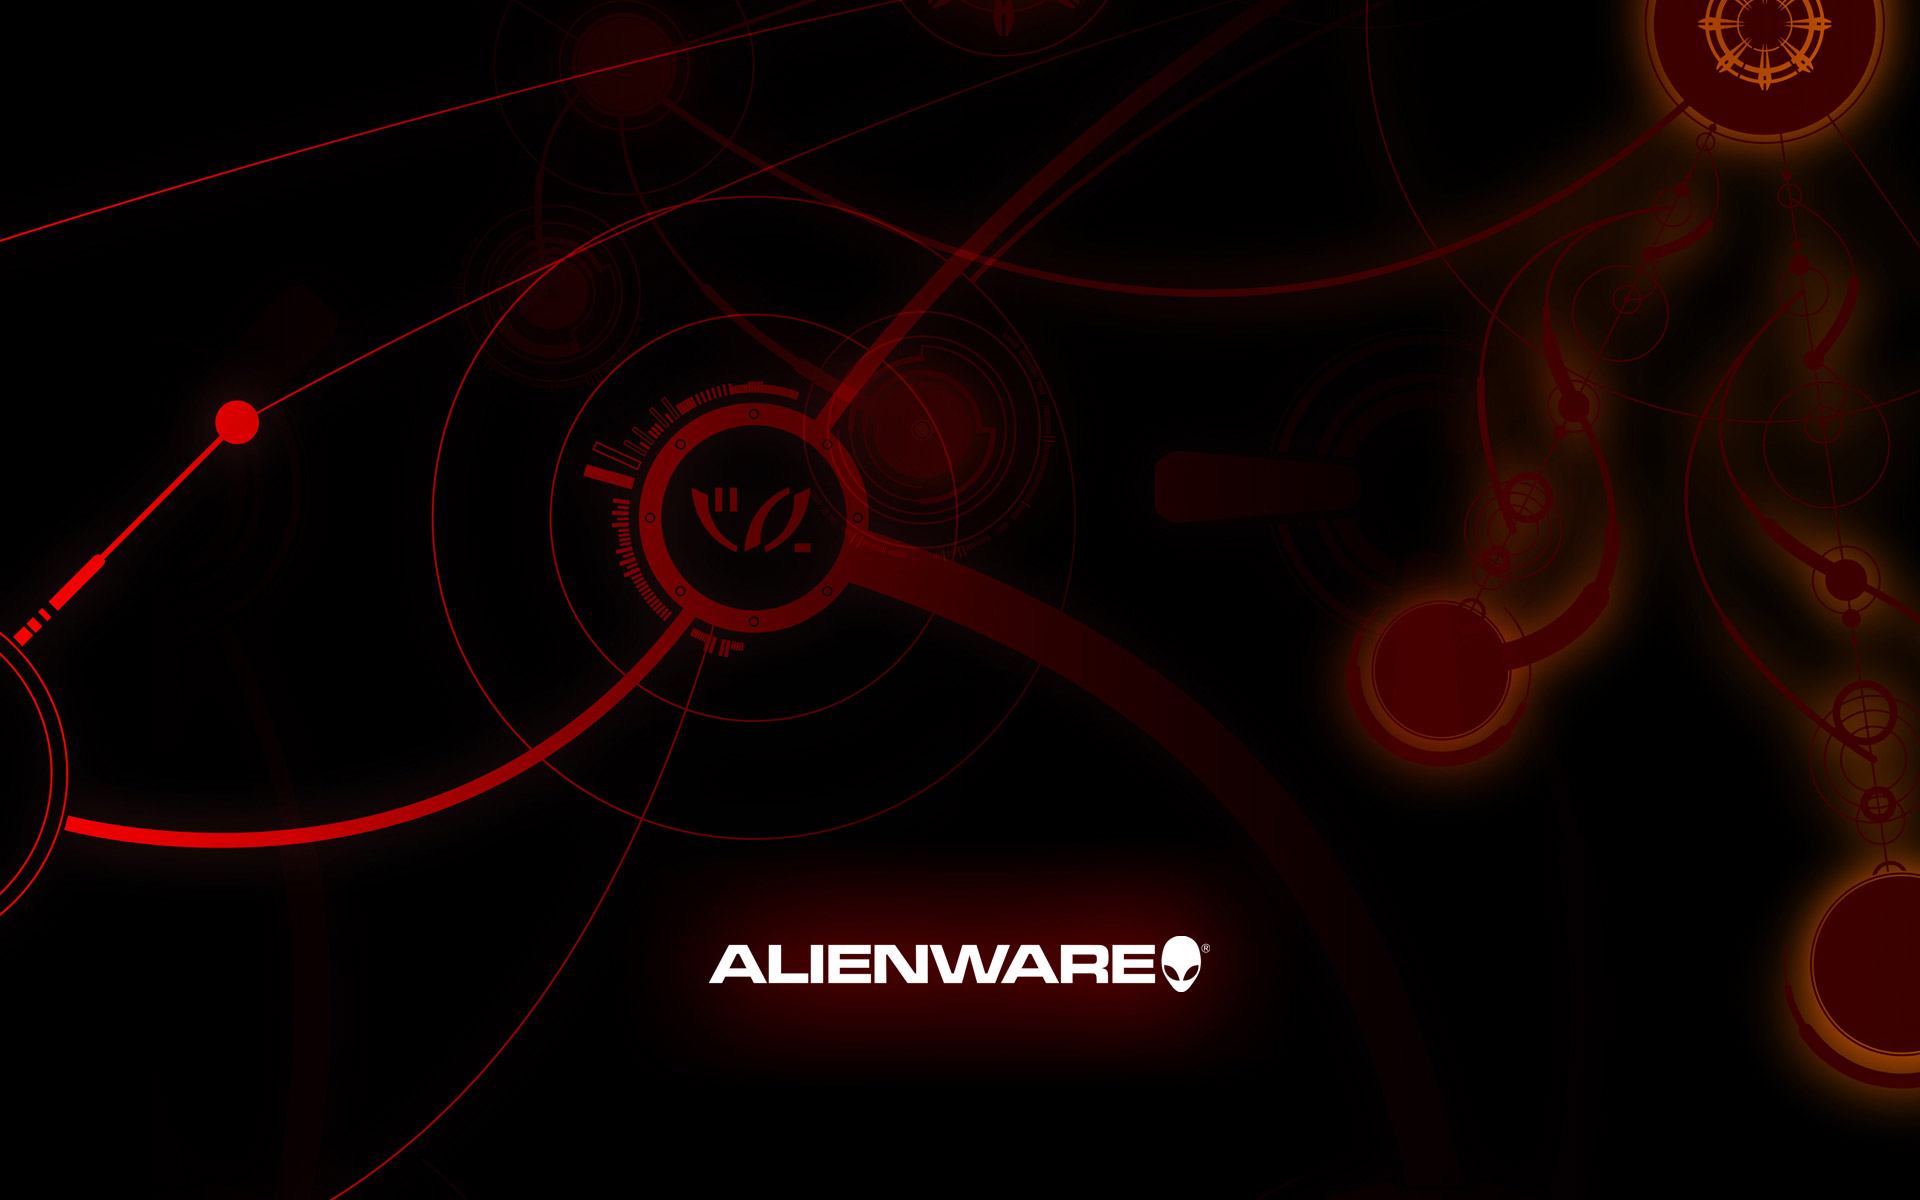 HOW TO: Restore the Alienware 'Look and Feel' after a clean